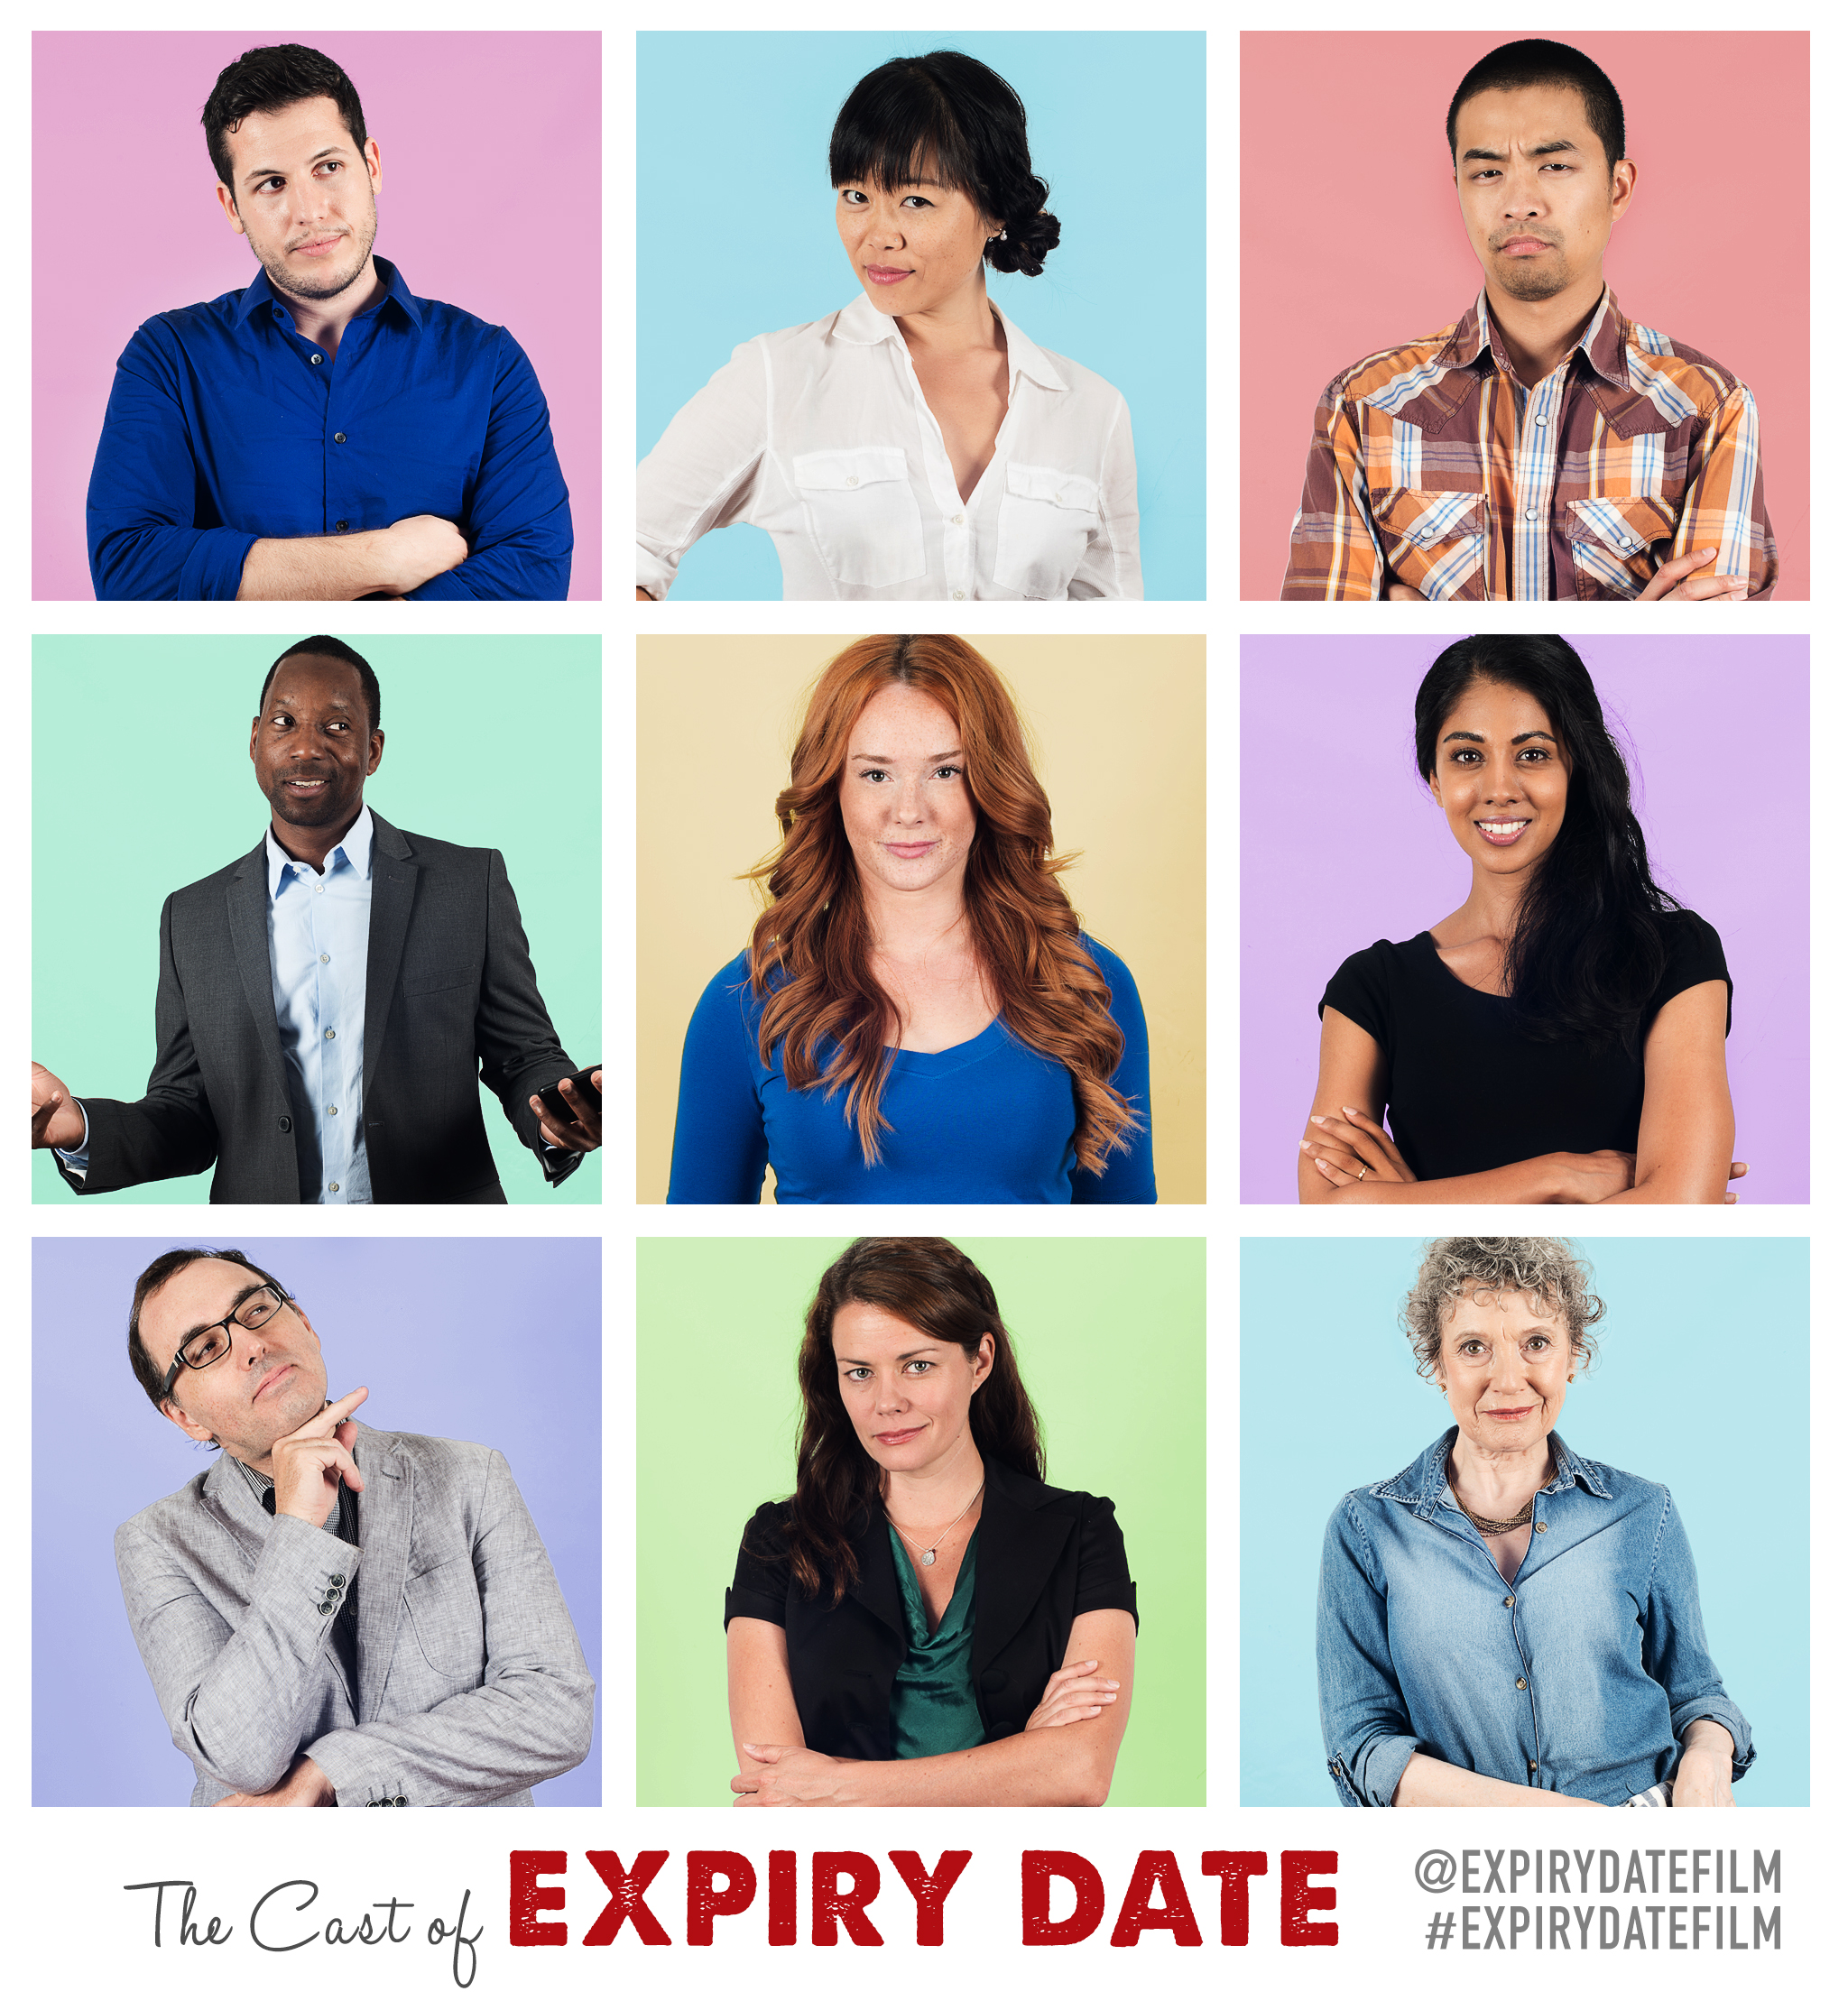 Christy Bruce, Jill Frappier, Albert Howell, Grace Lynn Kung, Jackie English, Alexander Wong, Sarena Parmar, Nigel Downer, David Emanuel Faria, Brittany Johnson, Mariah Owen, and Brittany Johnson in Expiry Date (2017)